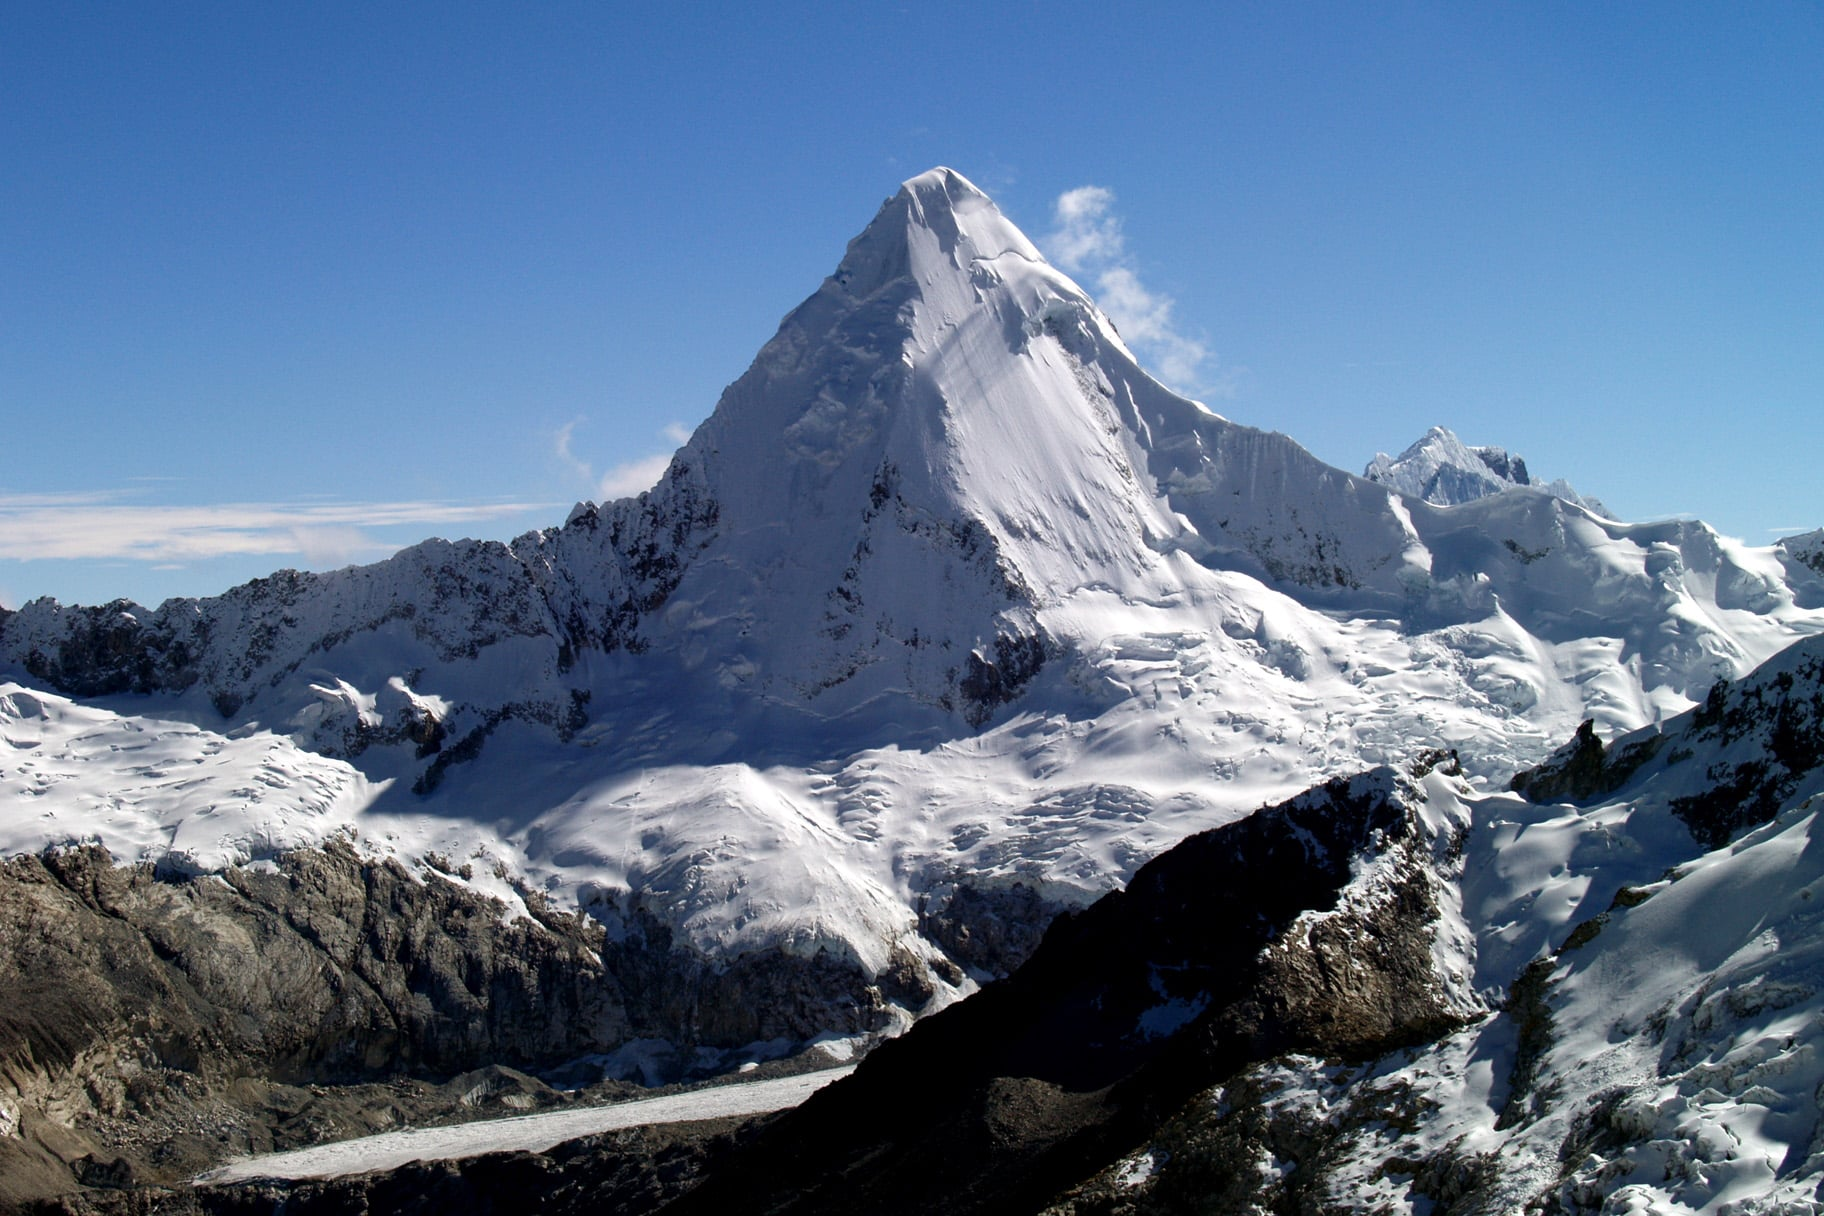 4-day ascent to the Artesonraju in the Peruvian Andes